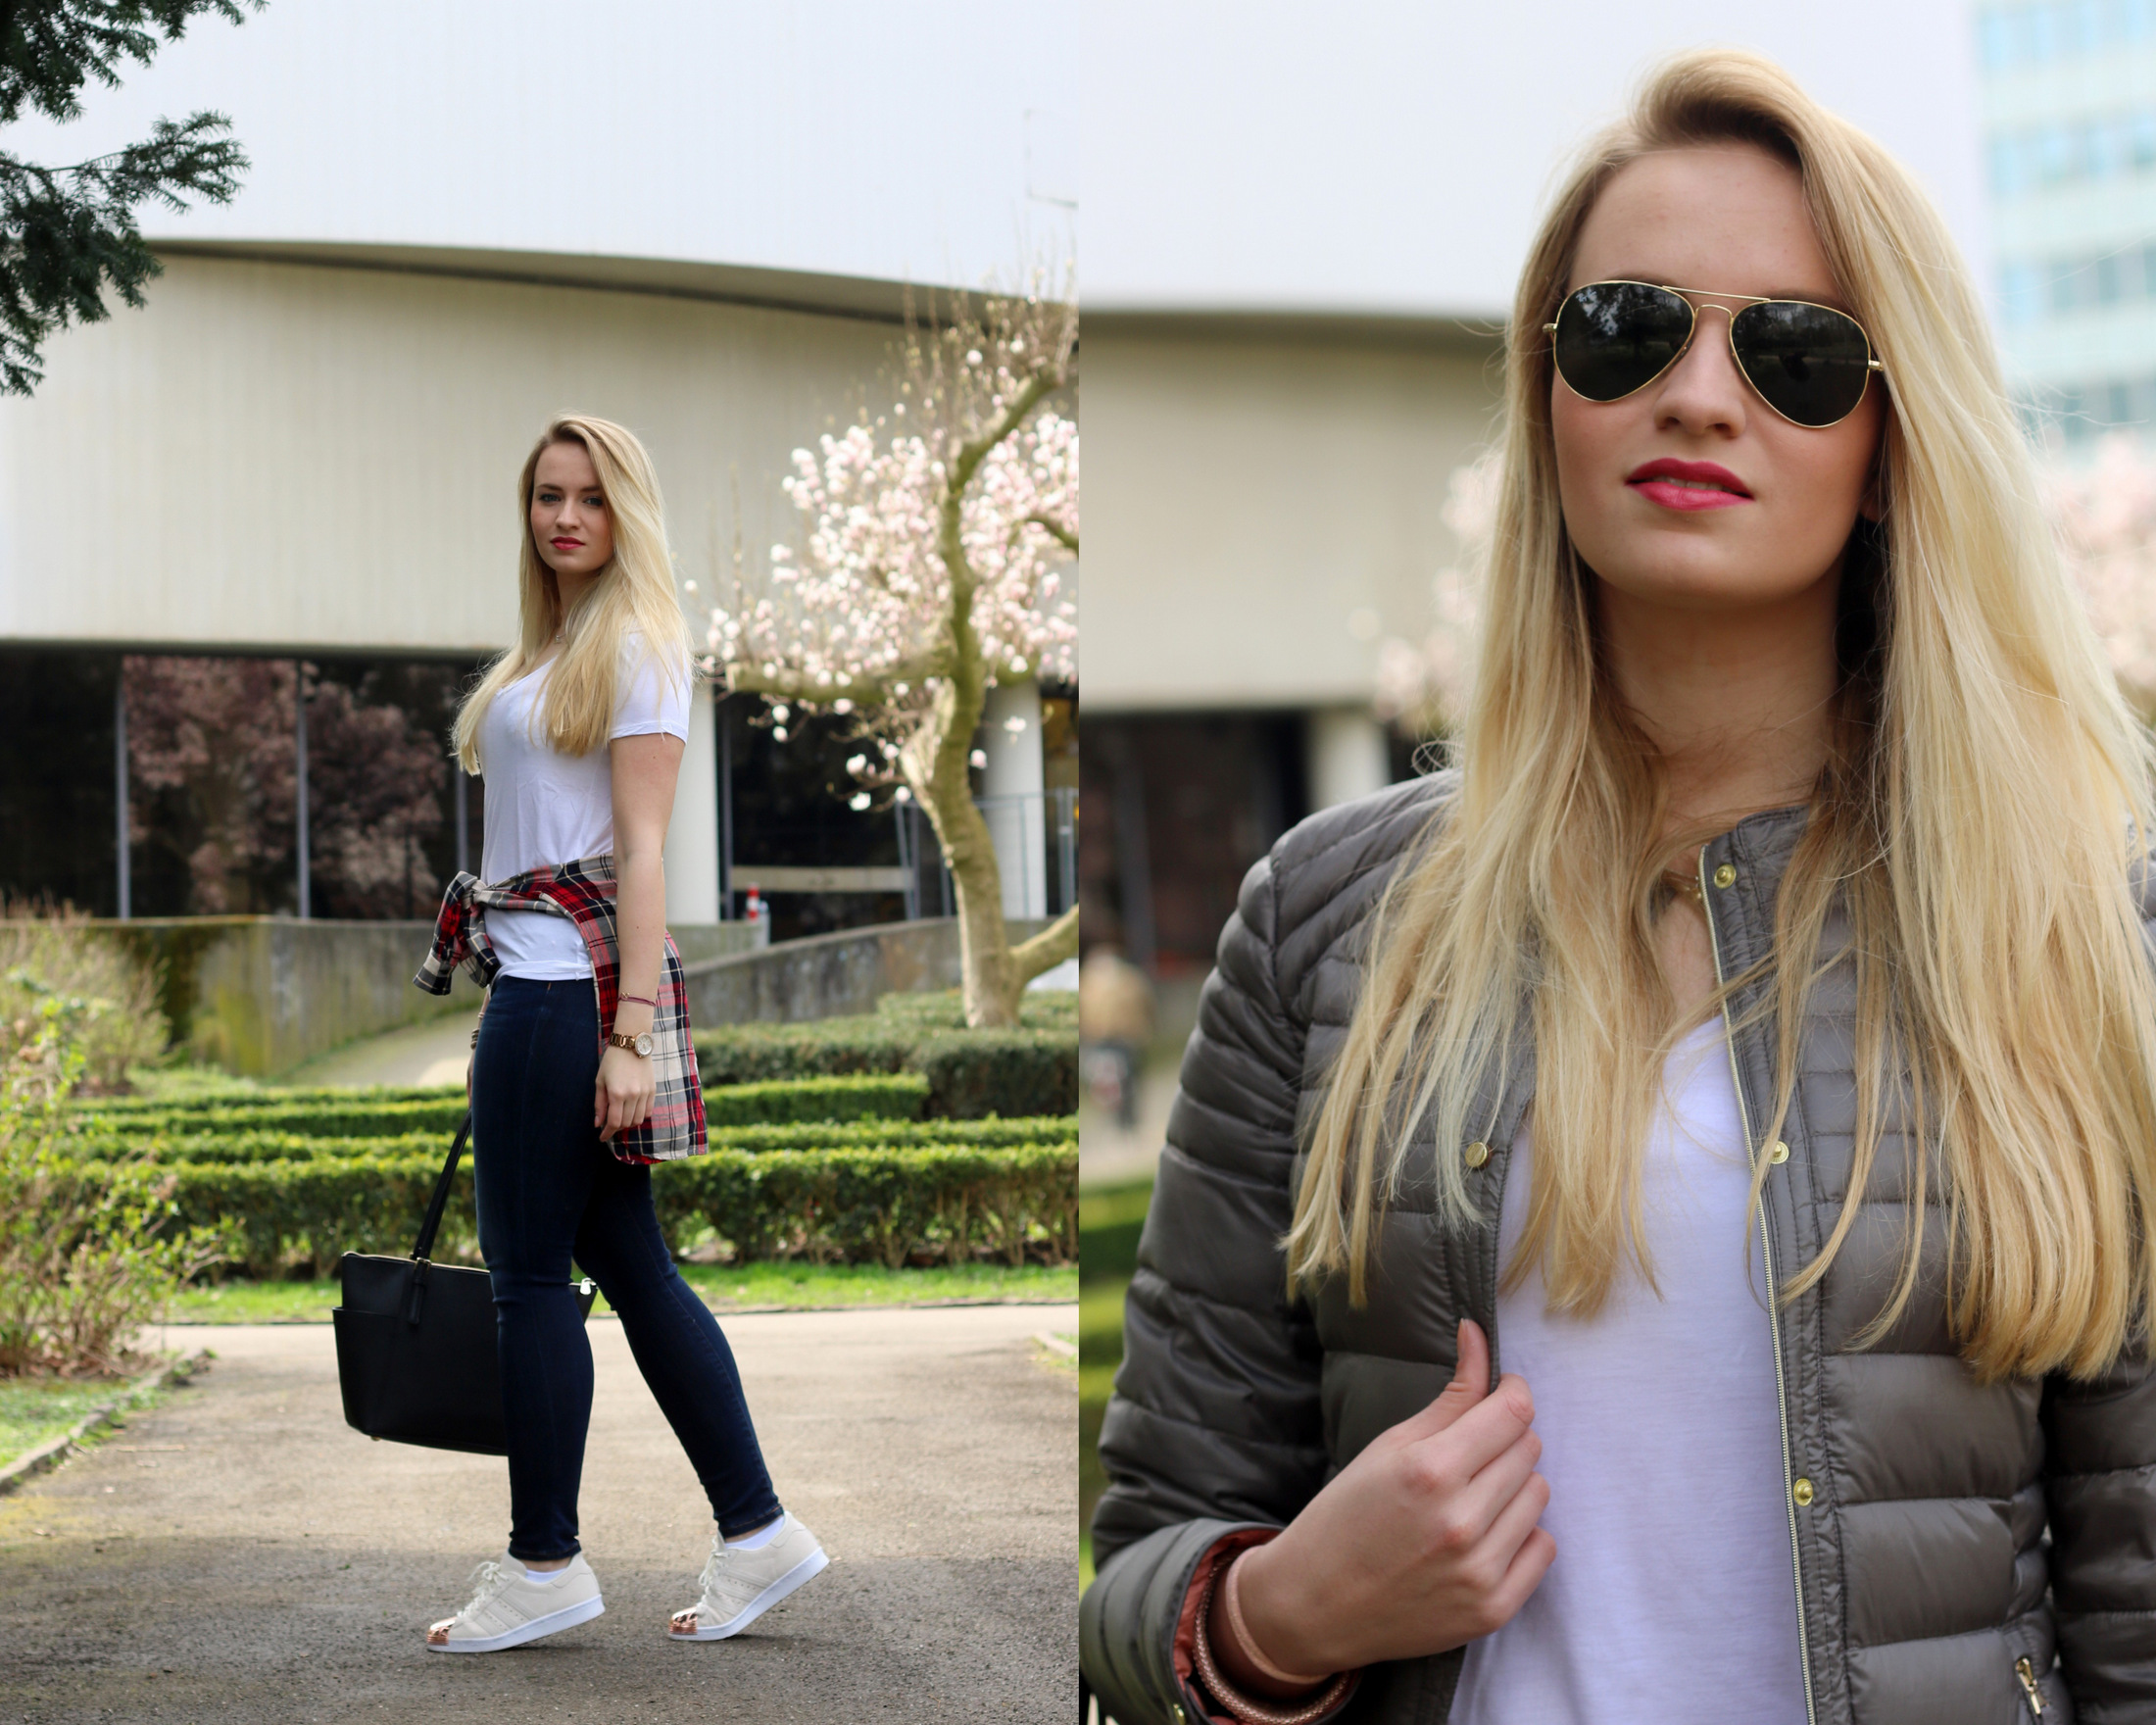 plain-shirt-white-tee-jeans-casual-look-outfit-ootd-blogger-mrsbrightside (7)